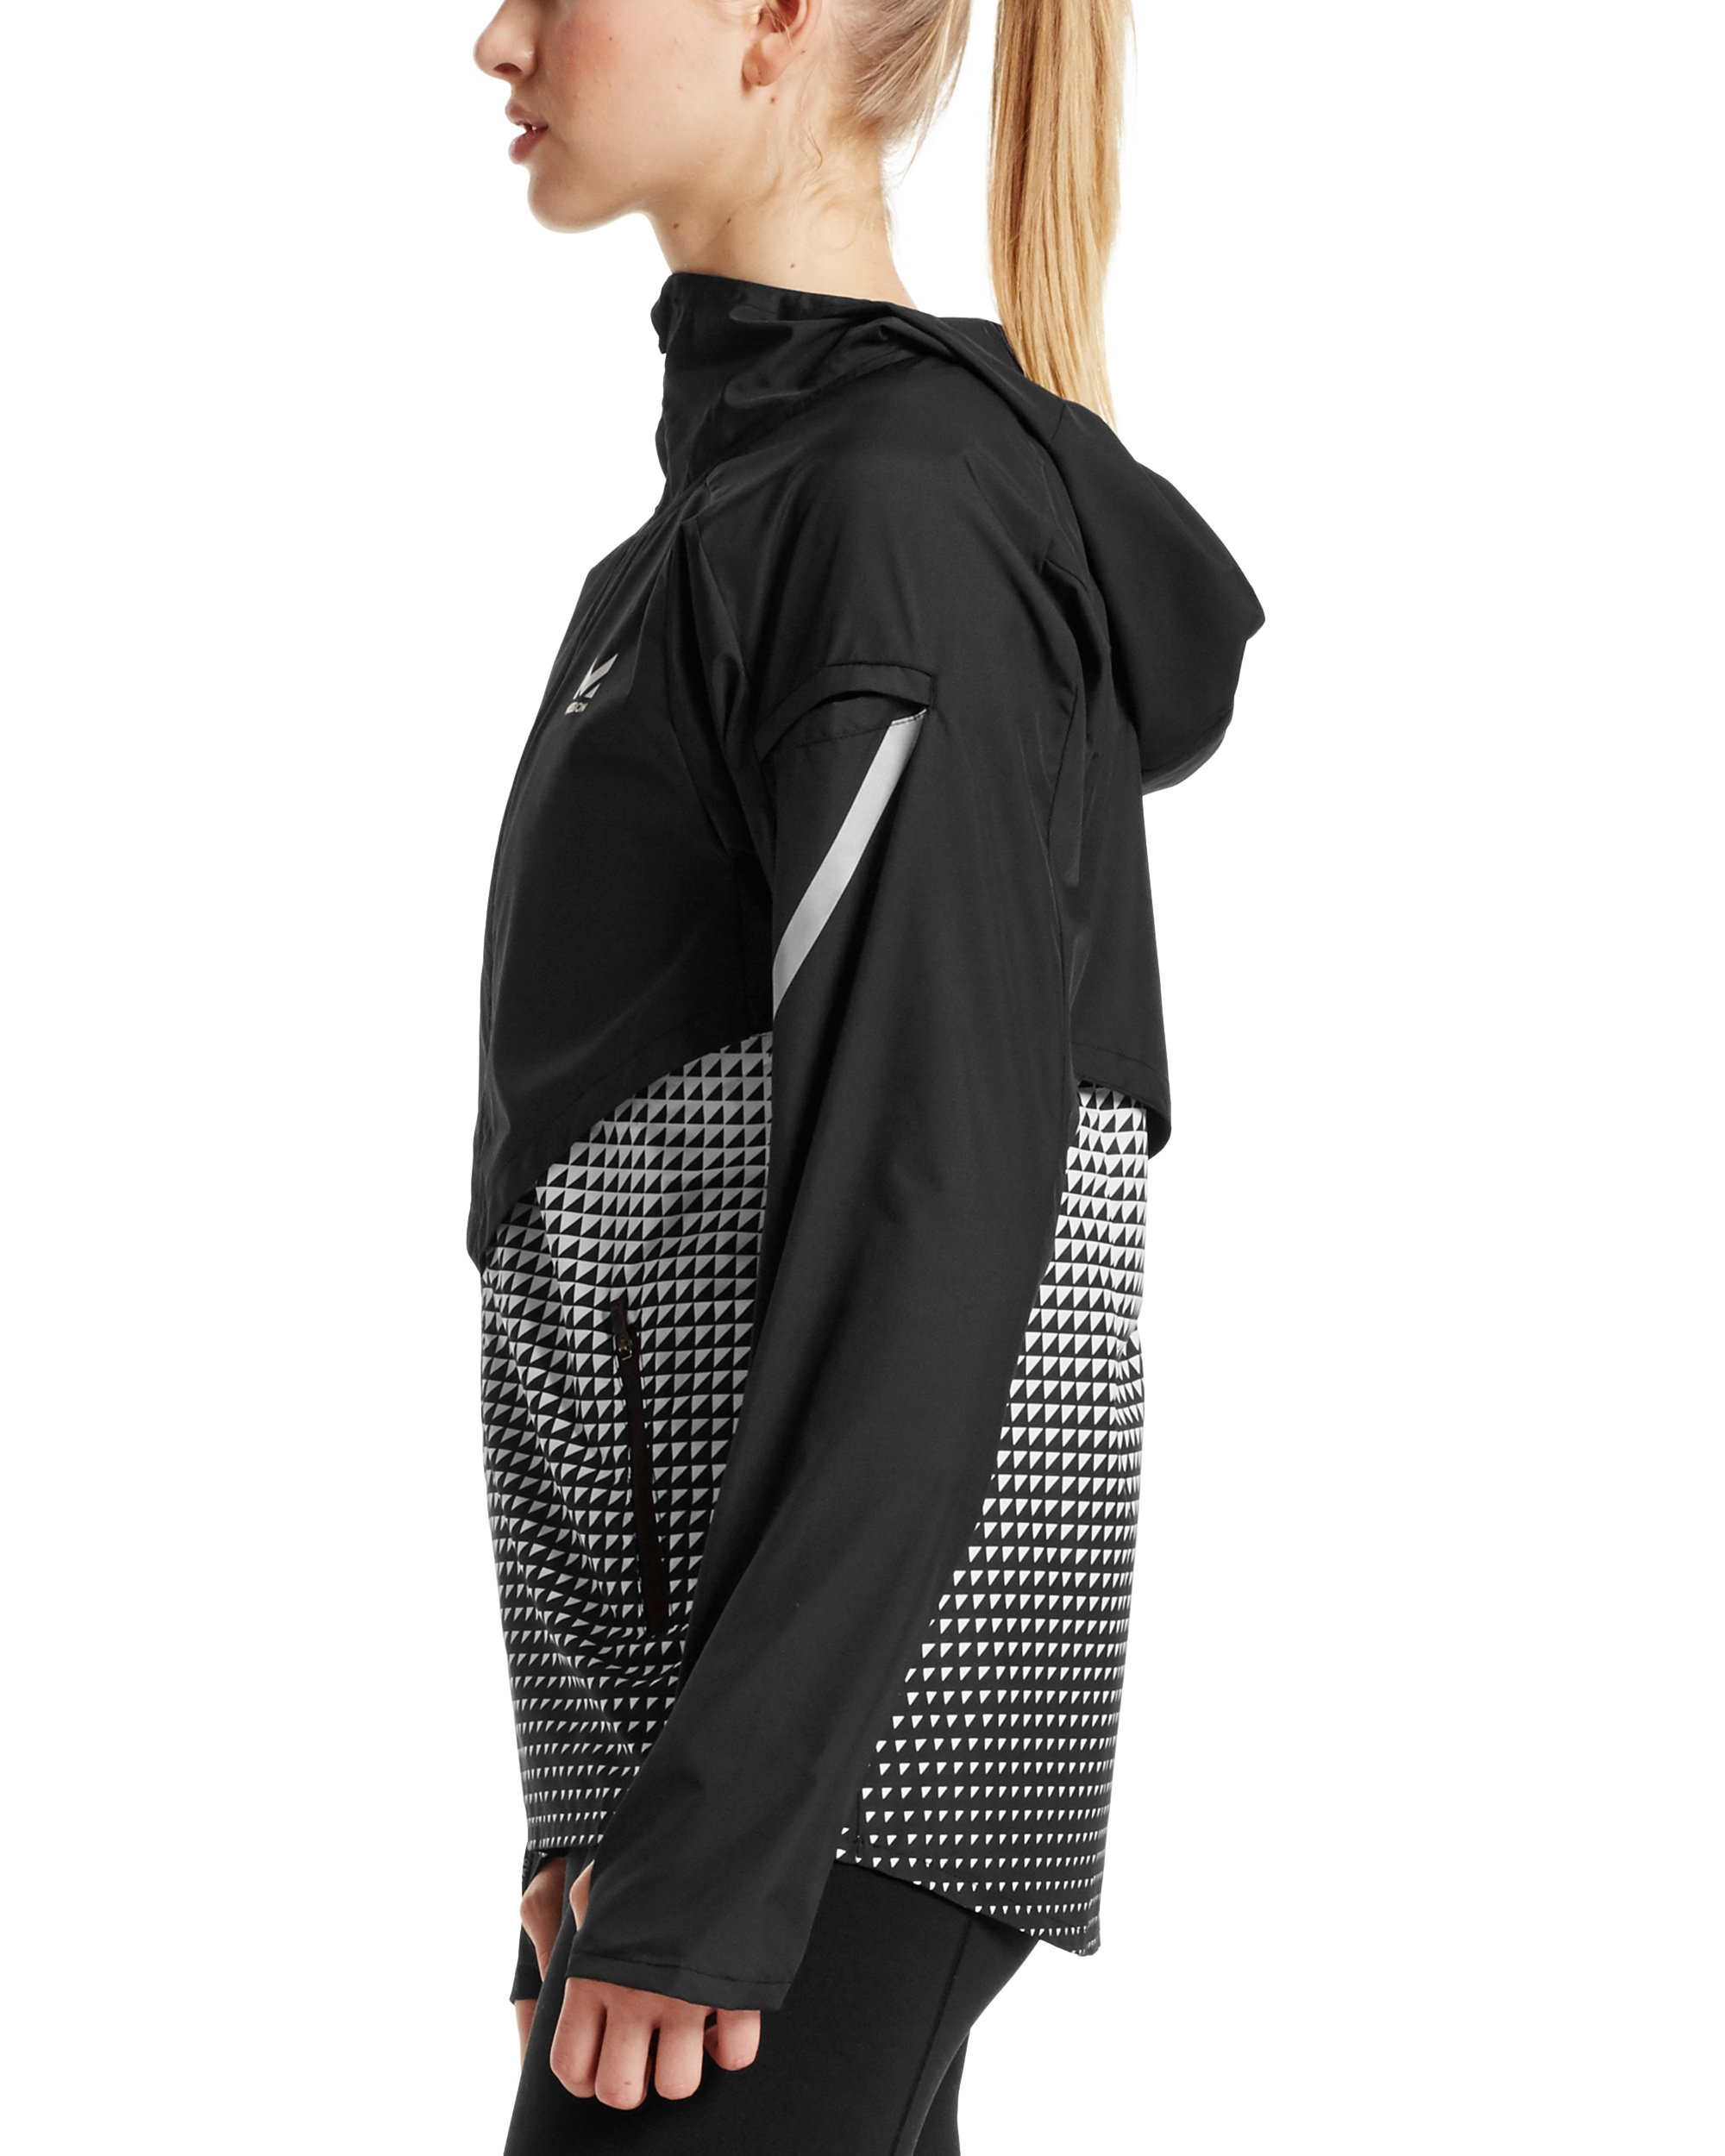 Mission Women's VaporActive Barometer Running Jacket, Moonless Night/Bright White Ombre, Medium by MISSION (Image #3)